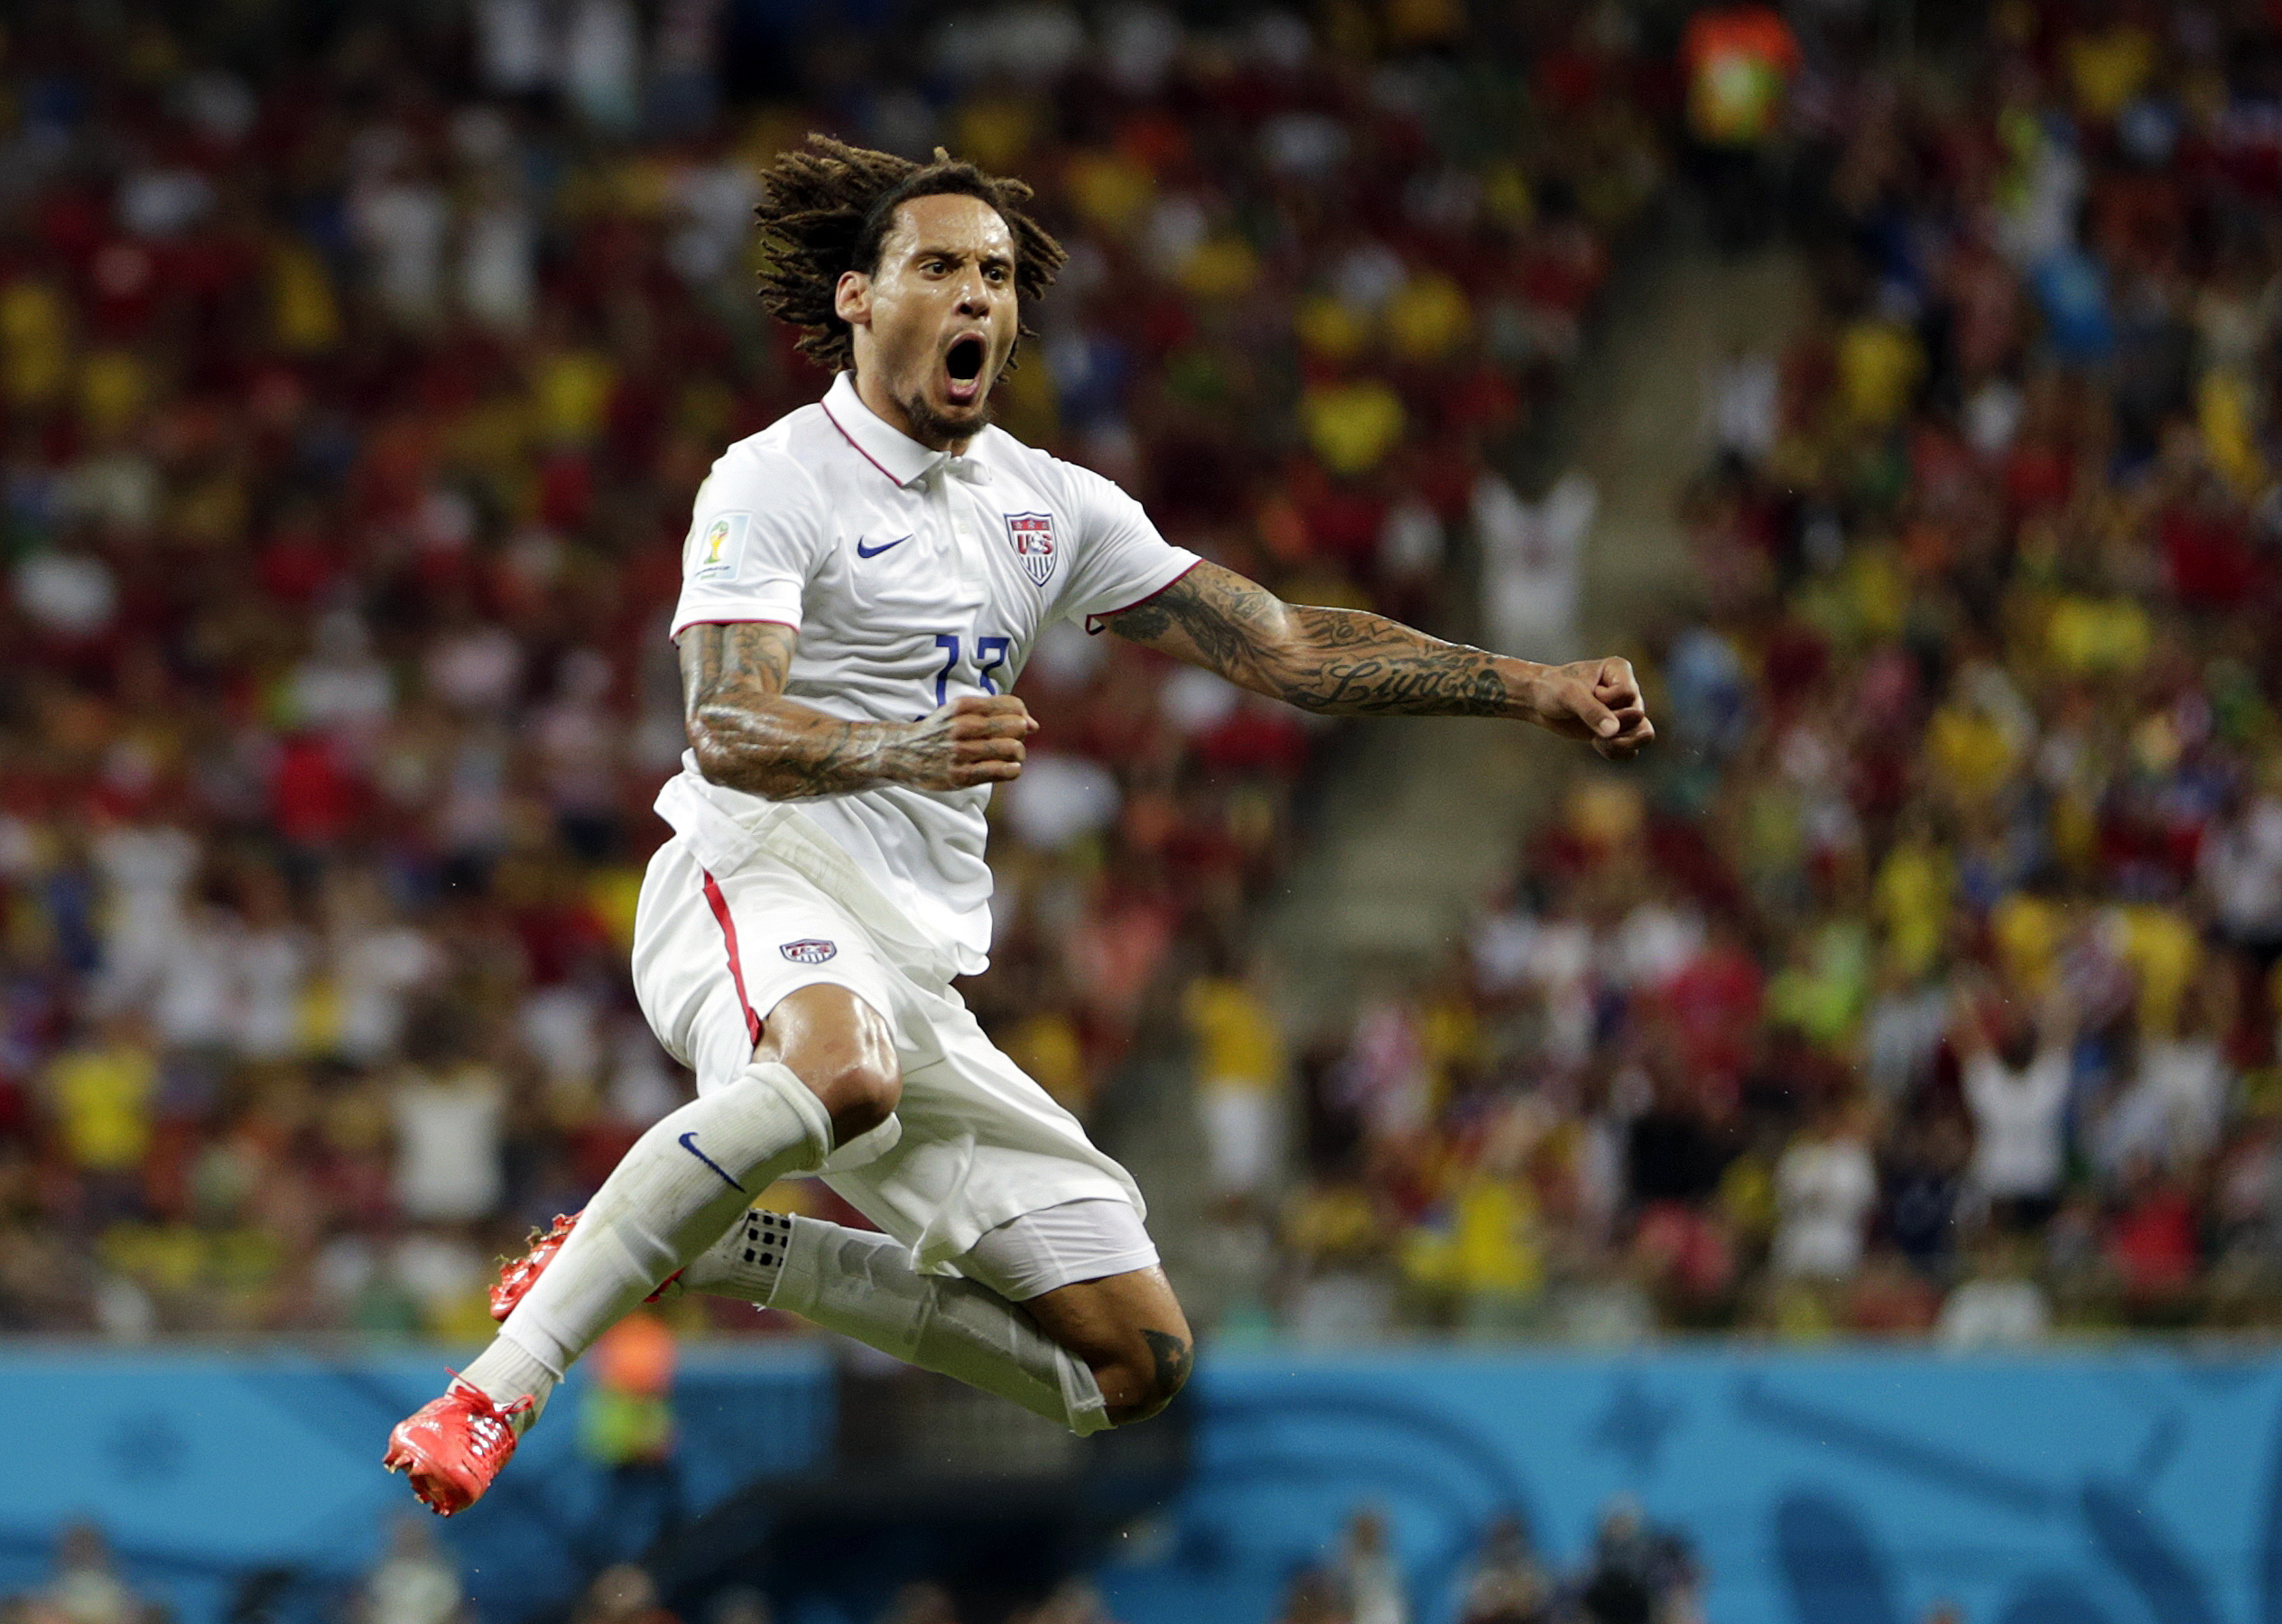 Jermaine Jones retired, 11 months after his last match